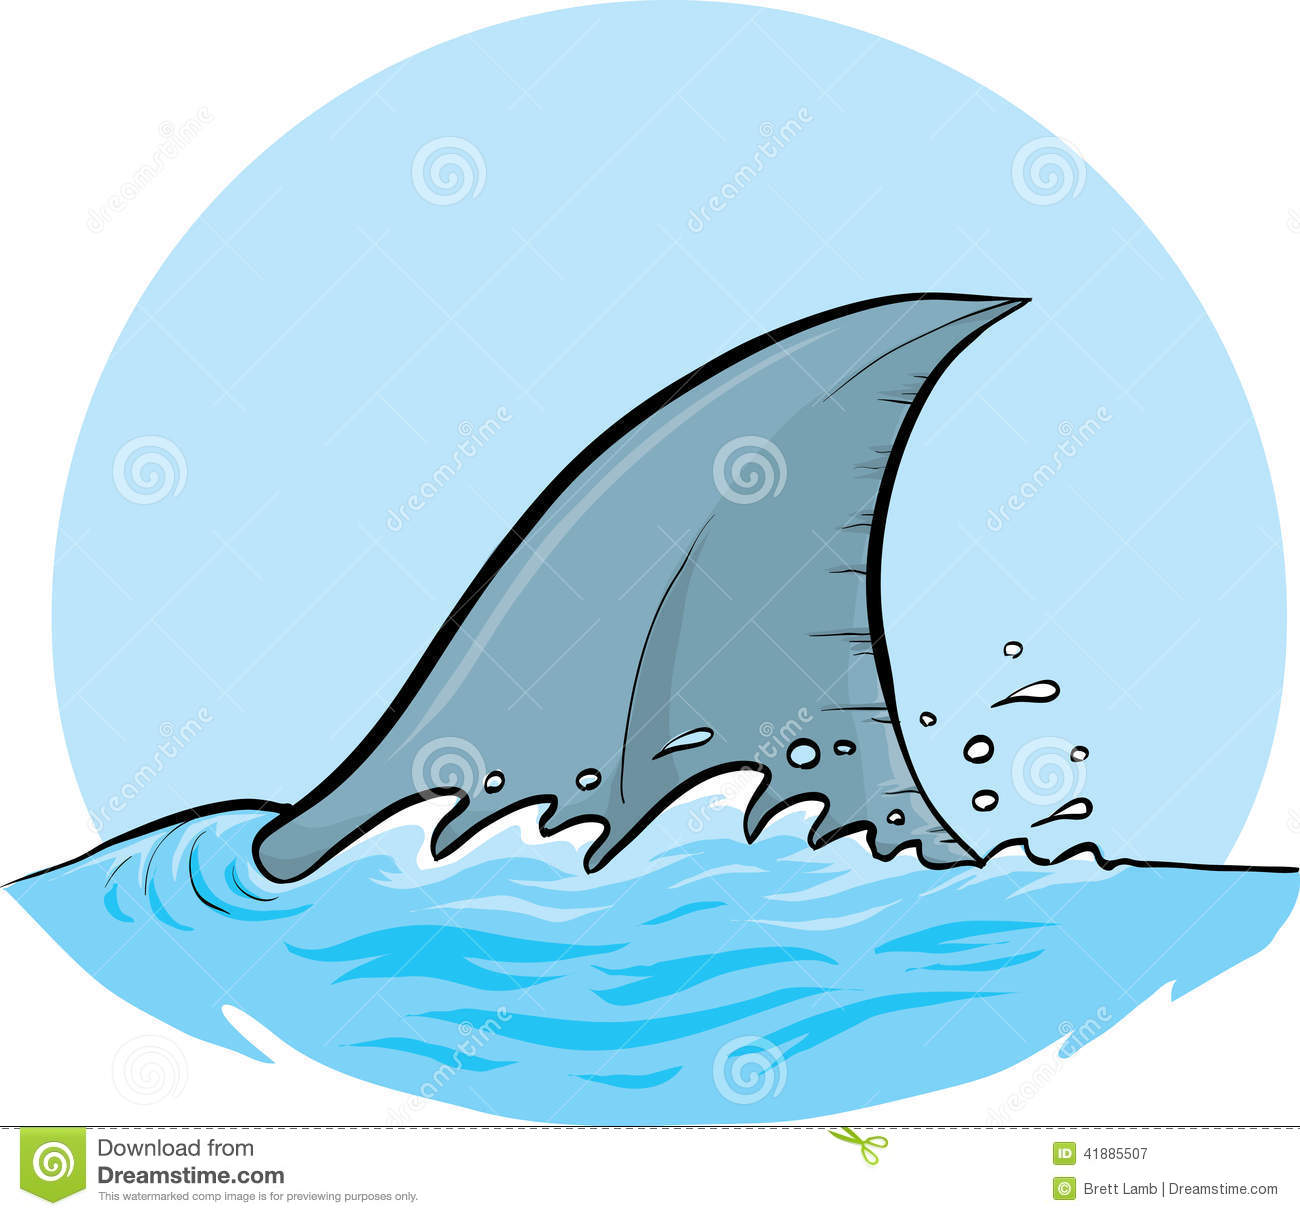 Shark Dorsal Fin Stock Illustration - Image: 41885507